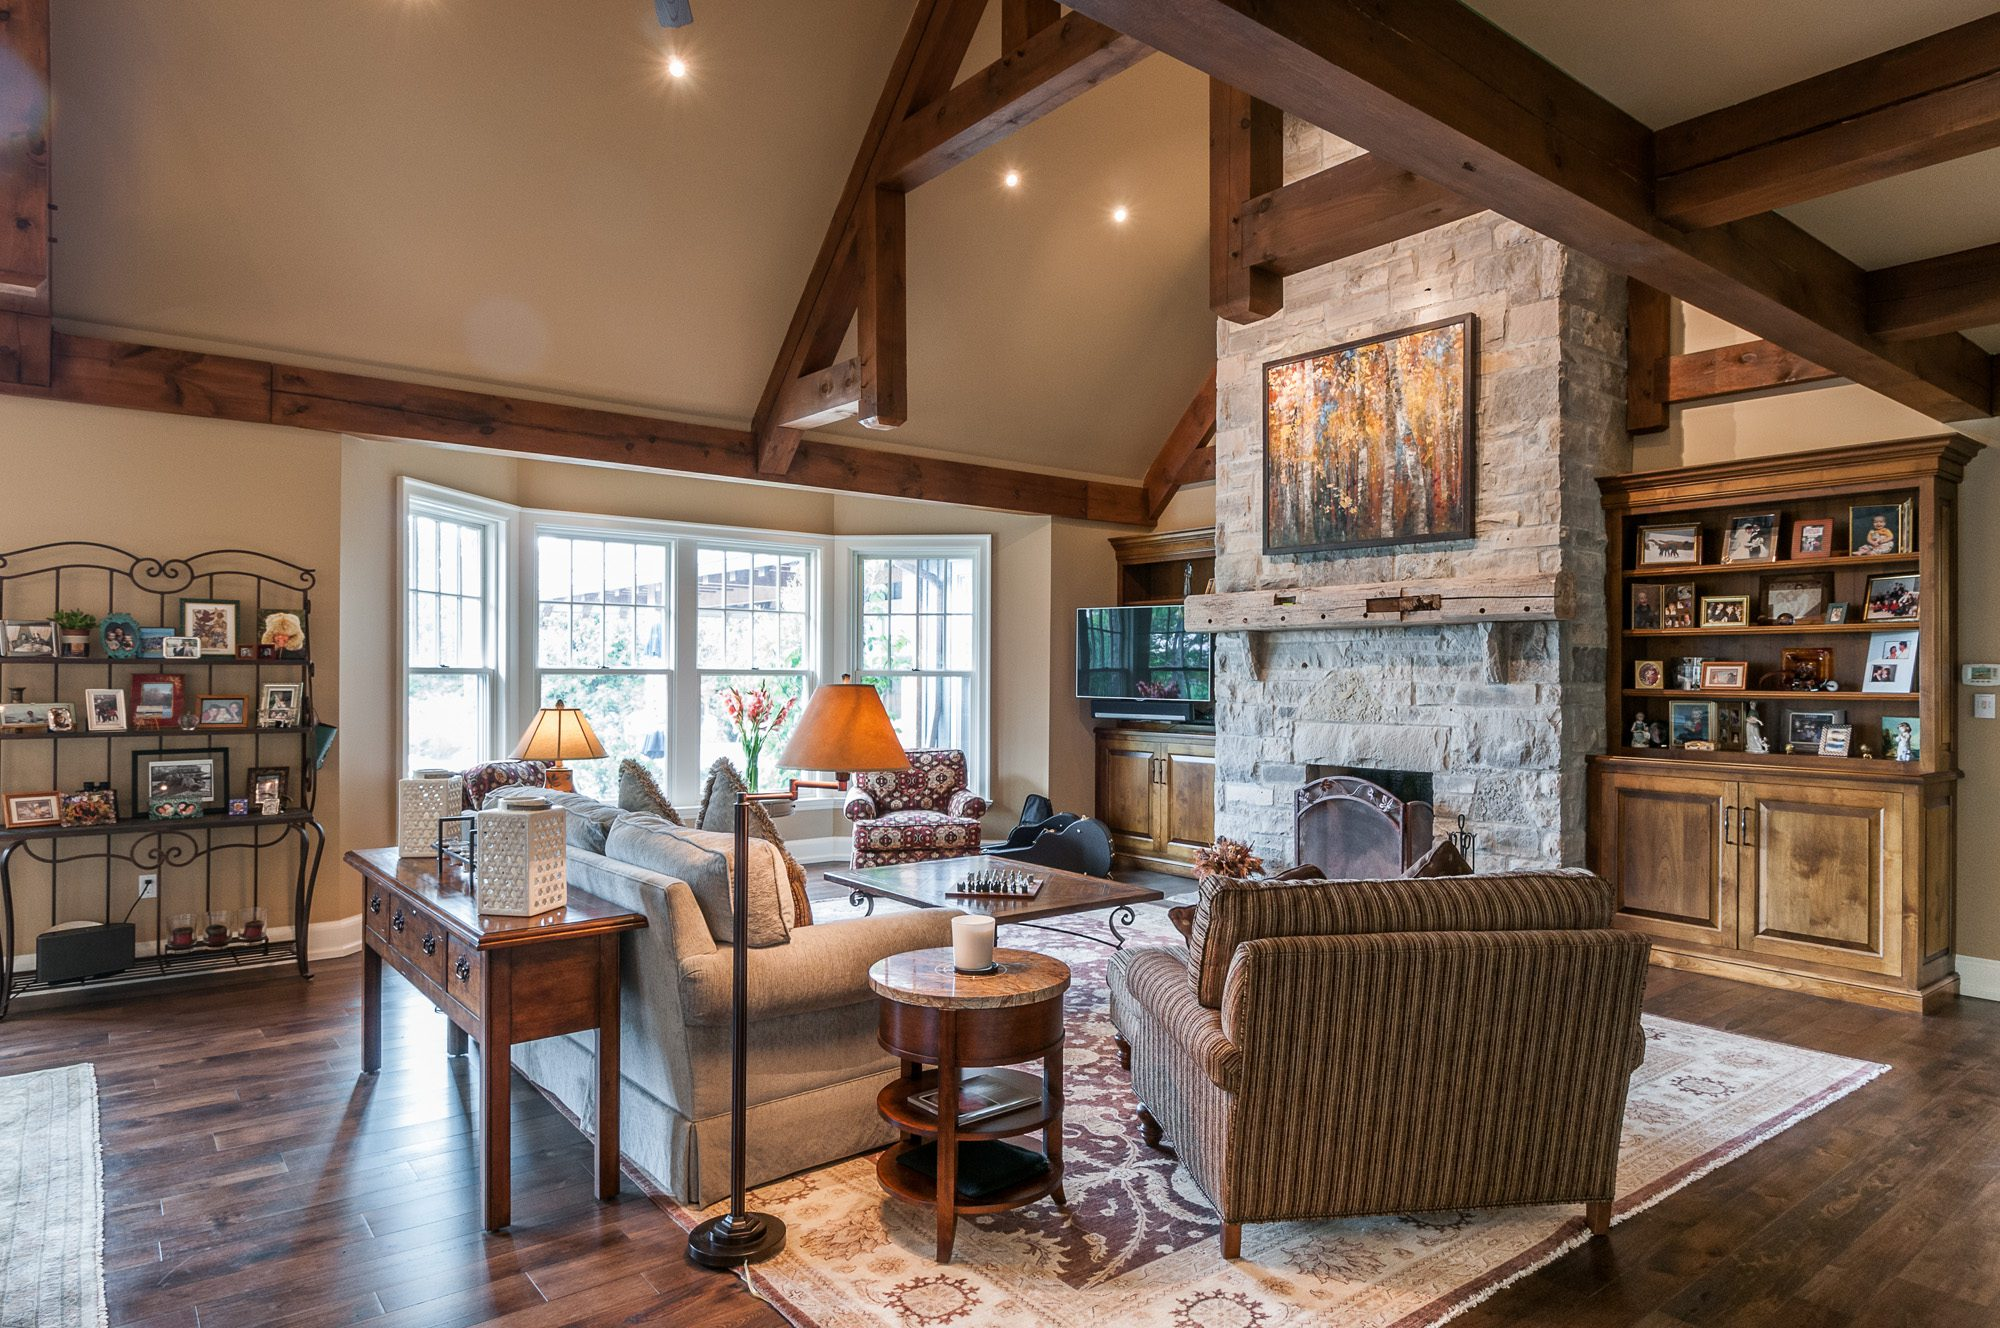 Normerica Timber Frame, Interior, Country House, Living Room, Great Room, Fireplace